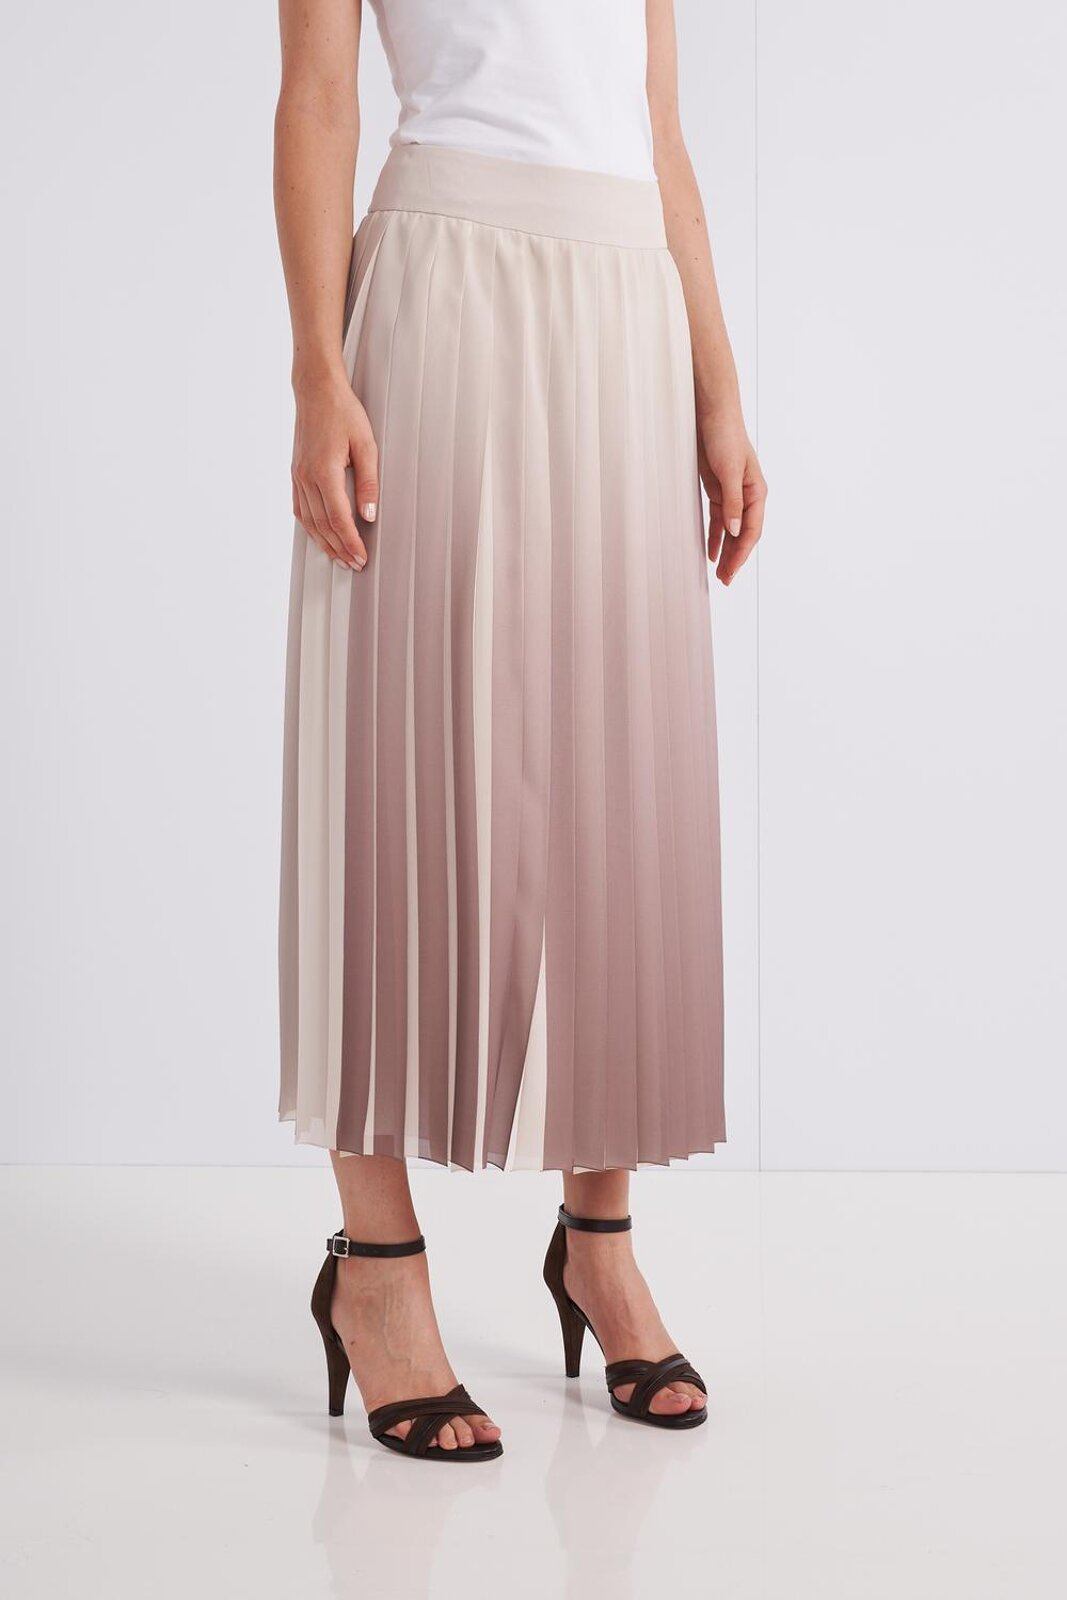 Midi Pleated Skirt In Lightweight And Fluid Crepe Fabric With Degradè Effect. Side Zip Closure, Wide Fit. - Peserico